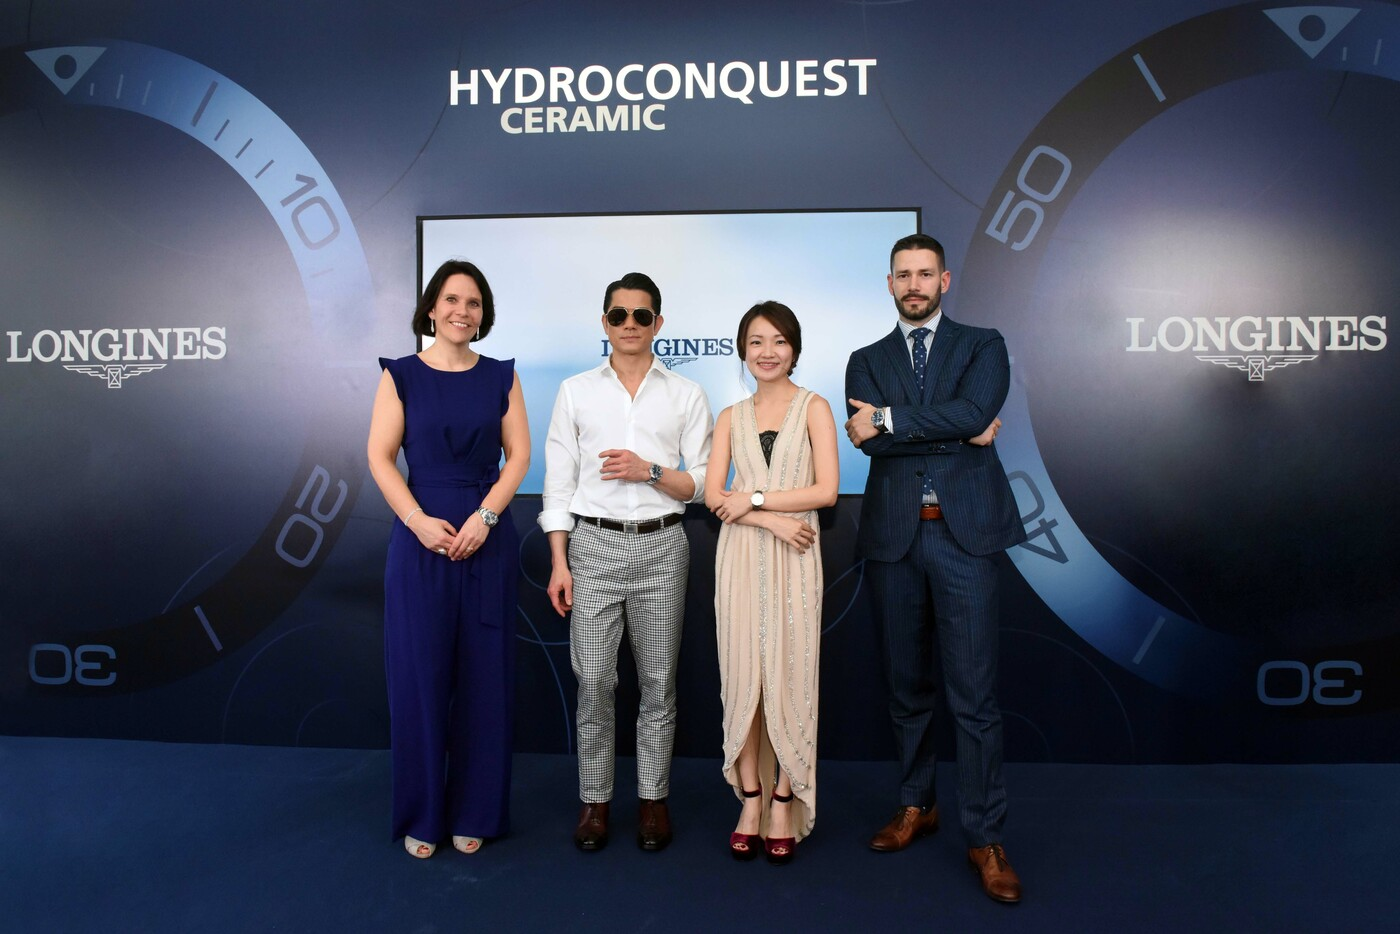 Longines Corporate Event: Longines dives into the HydroConquest universe during a special event in Singapore attended by Aaron Kwok 9